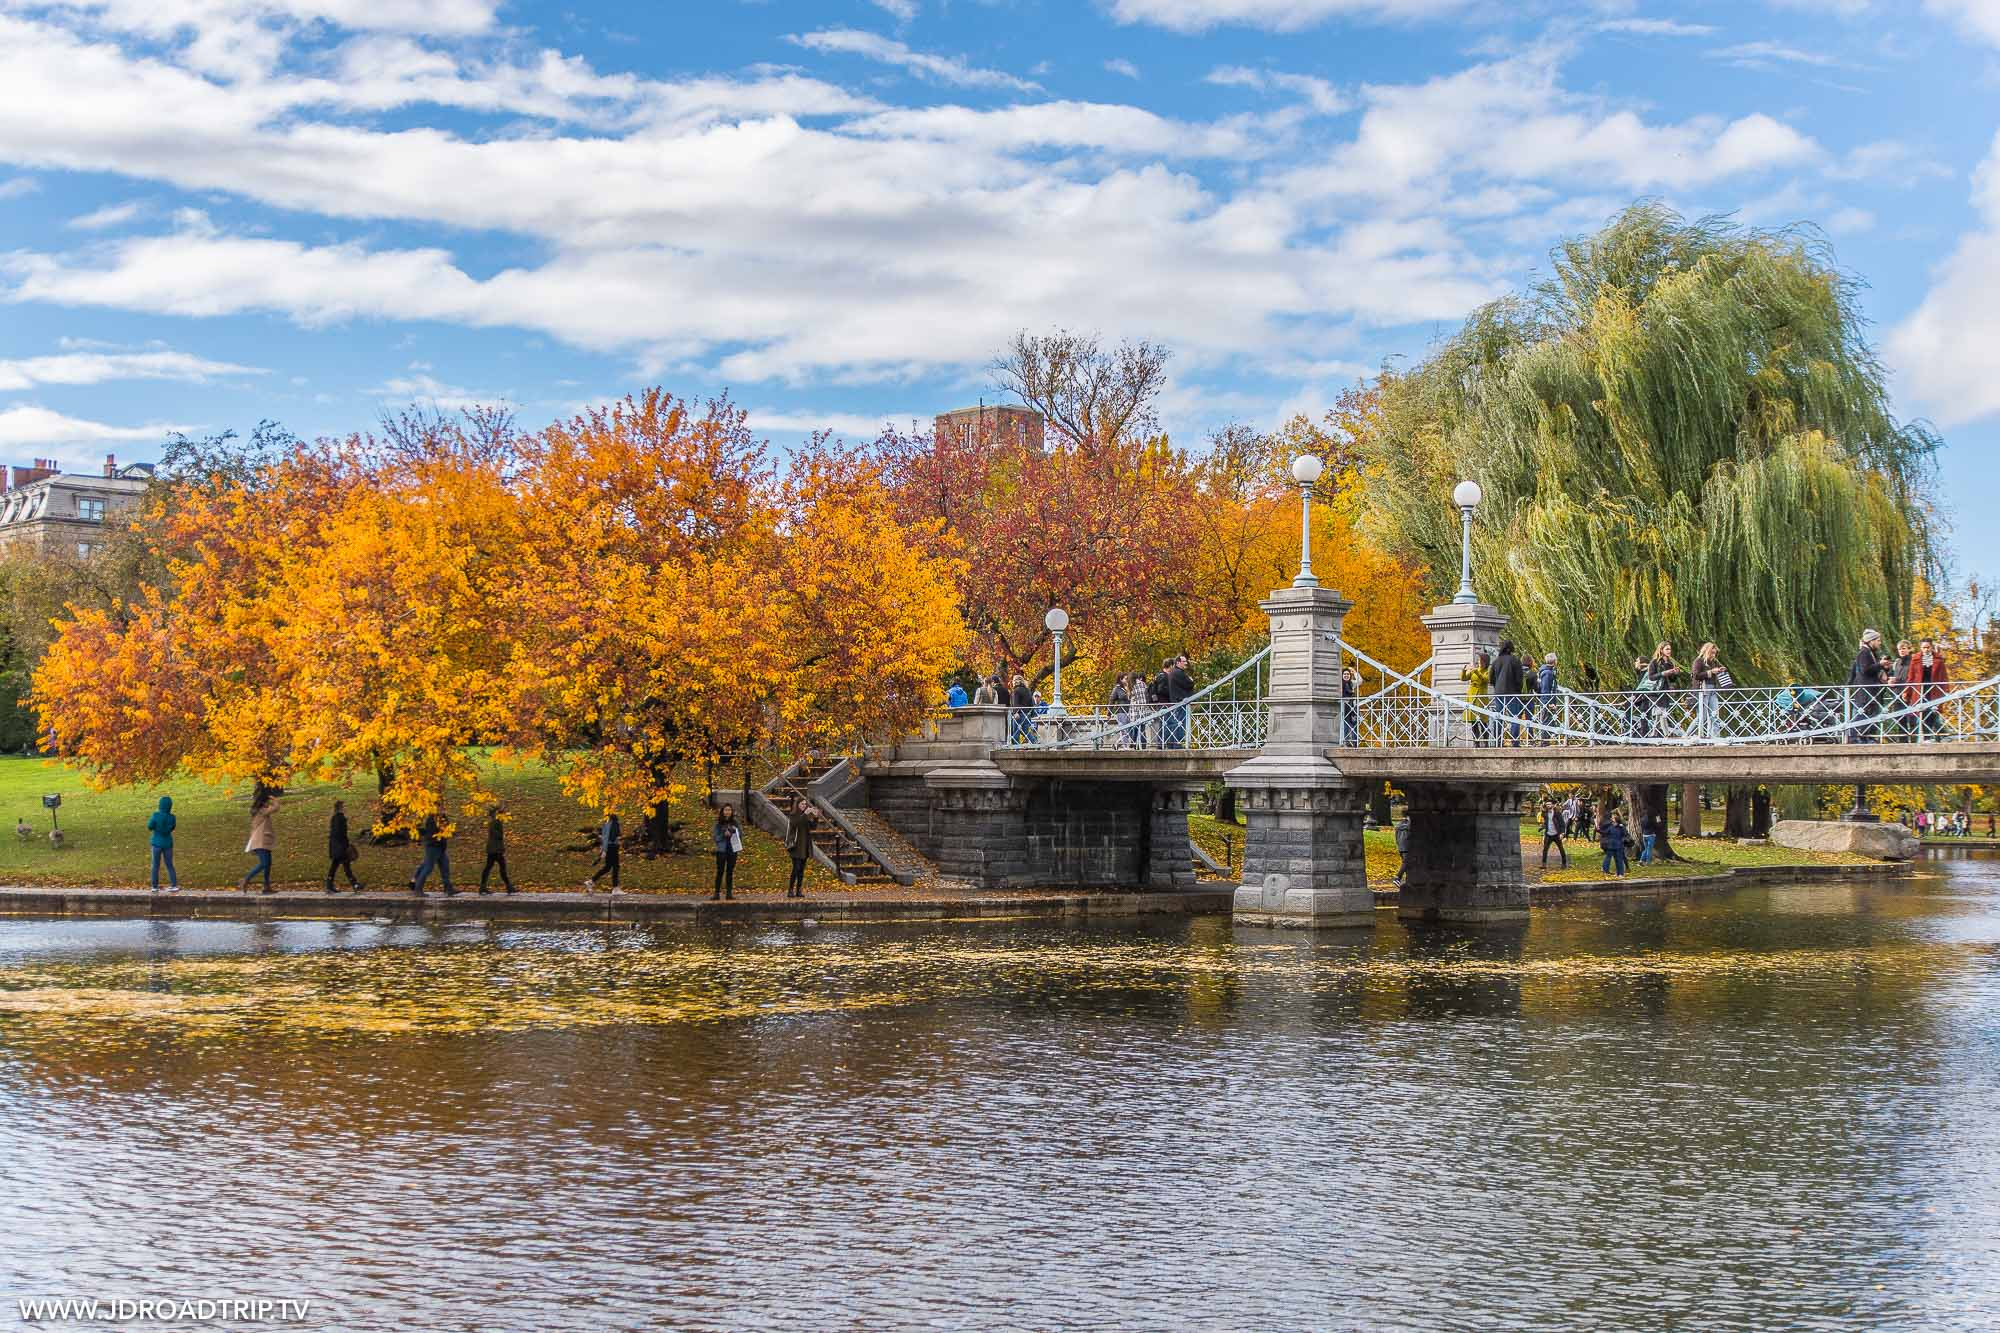 Visiter Boston en 4 jours - Public Garden de Boston